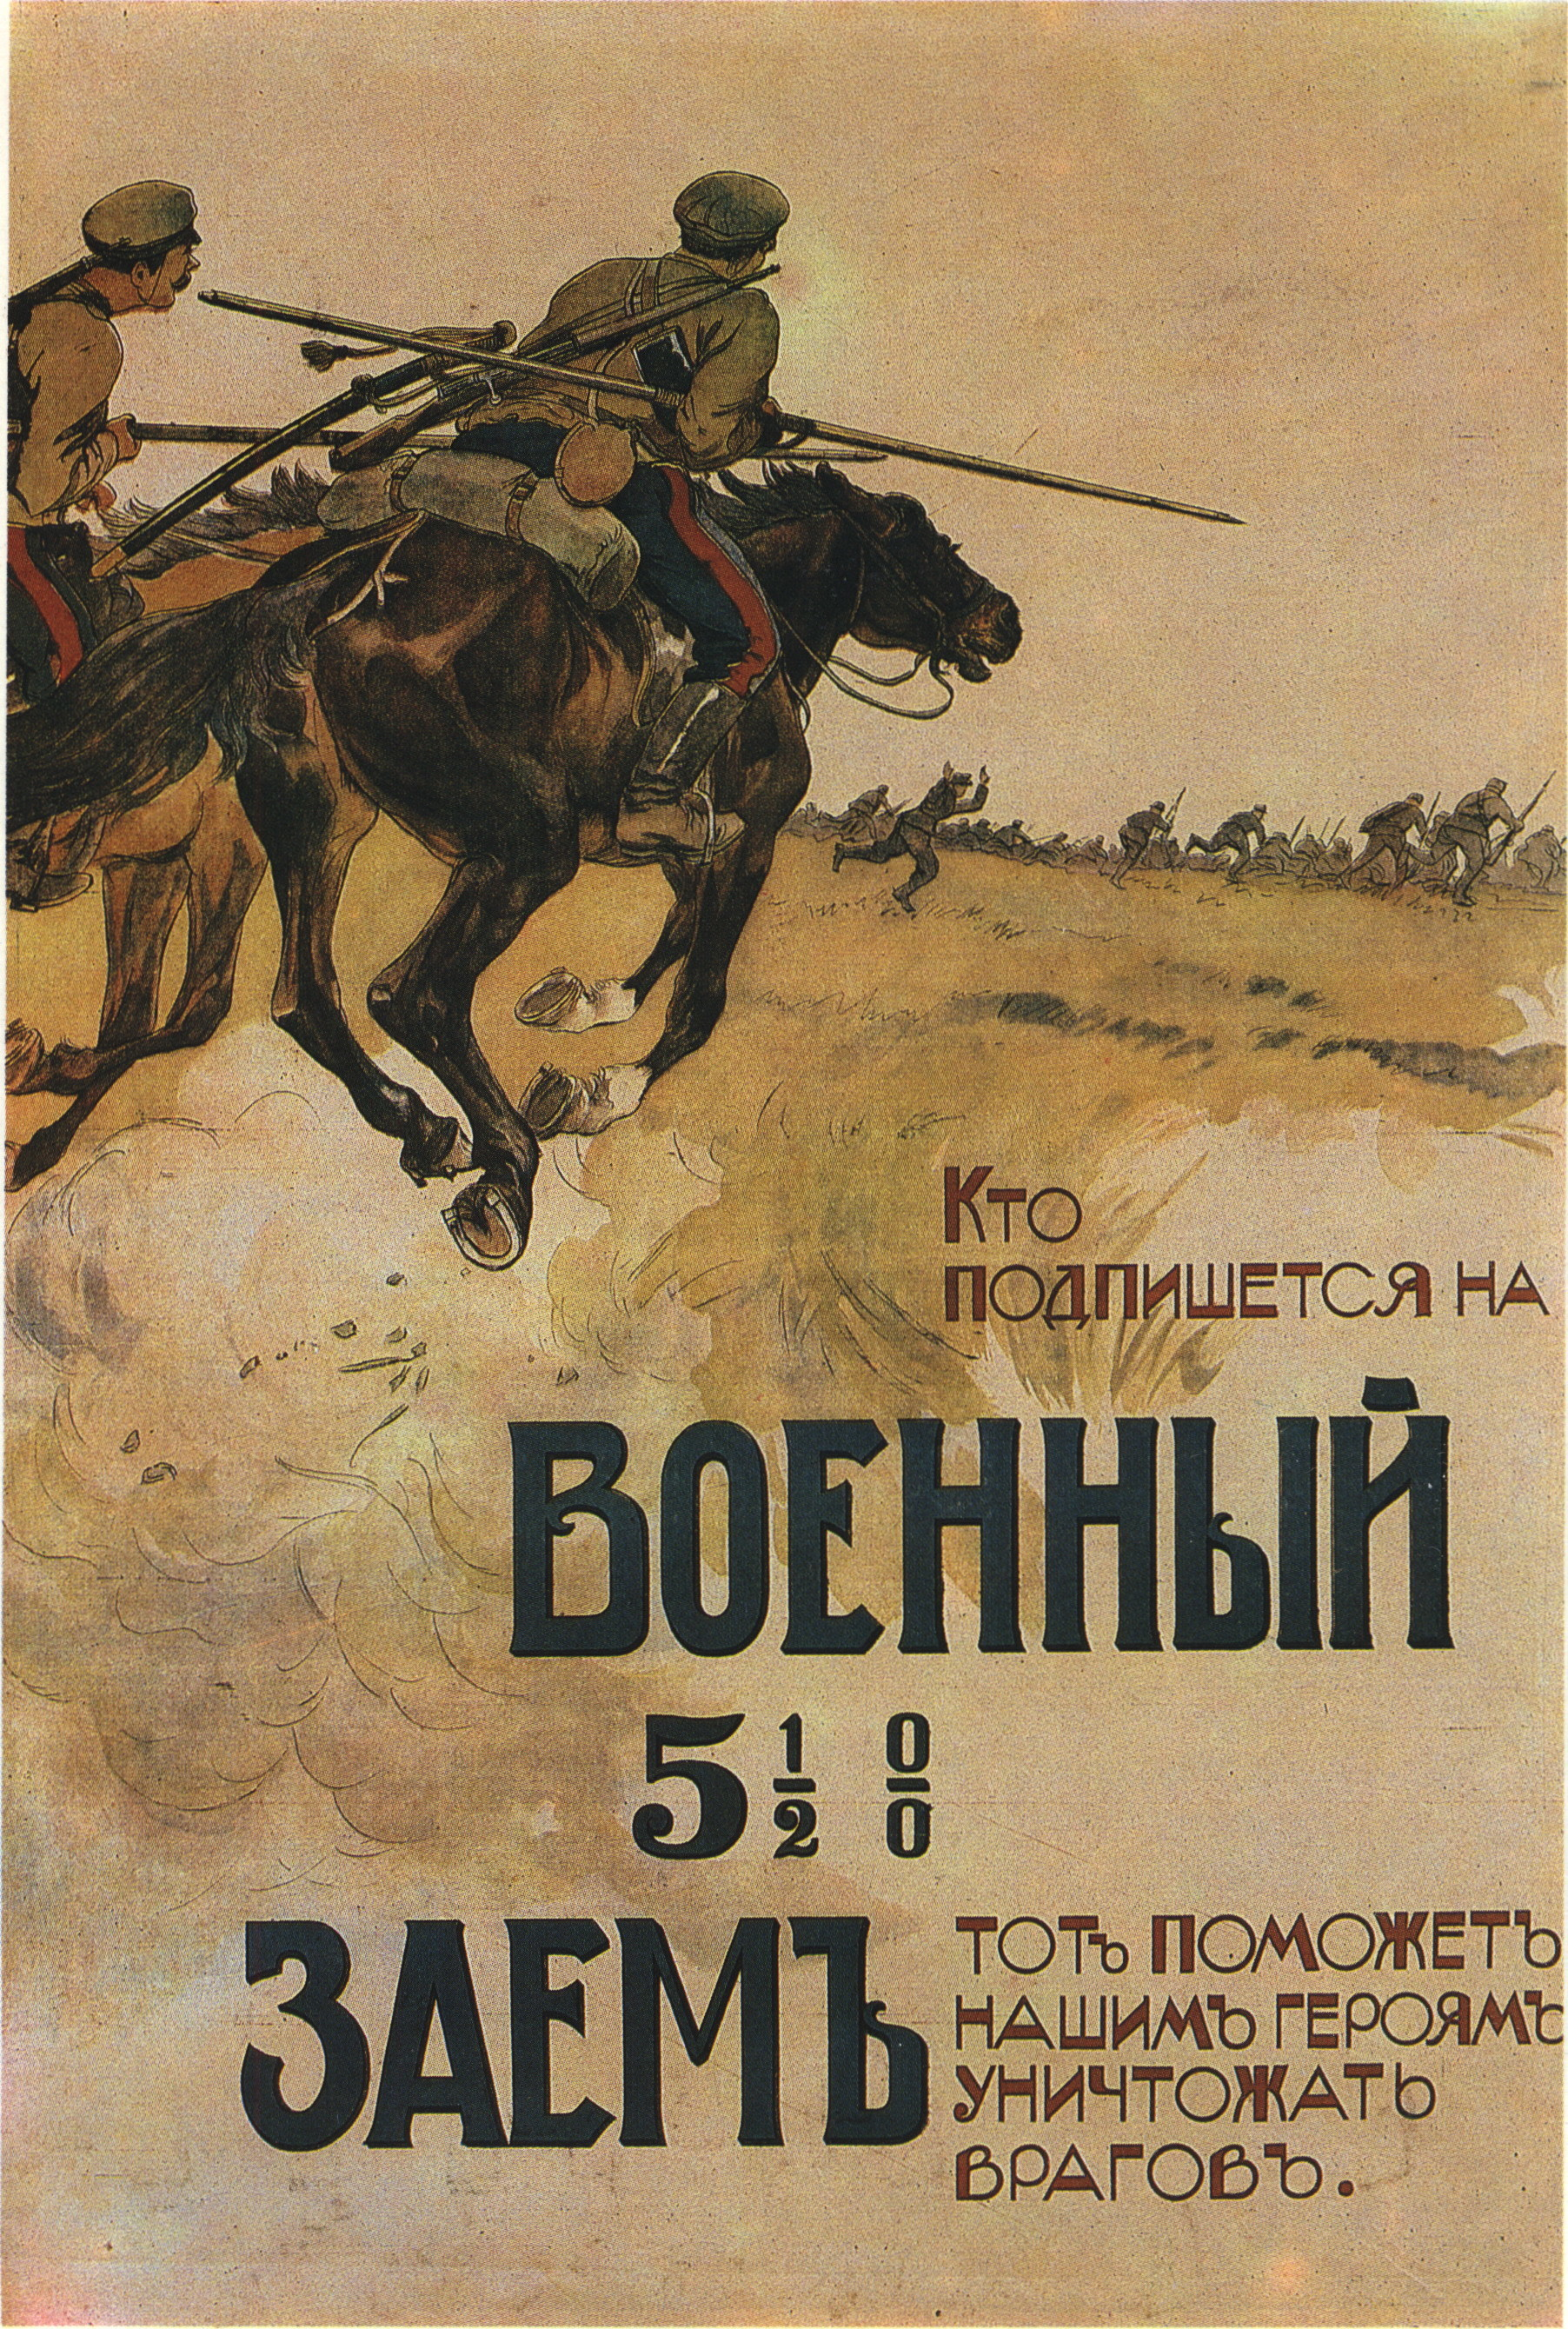 "<p>Russian <span class=""caps"">WWI</span> propaganda, <a href=""https://commons.wikimedia.org/w/index.php?curid=18580616"">Wikimedia Commons</a>.</p>"